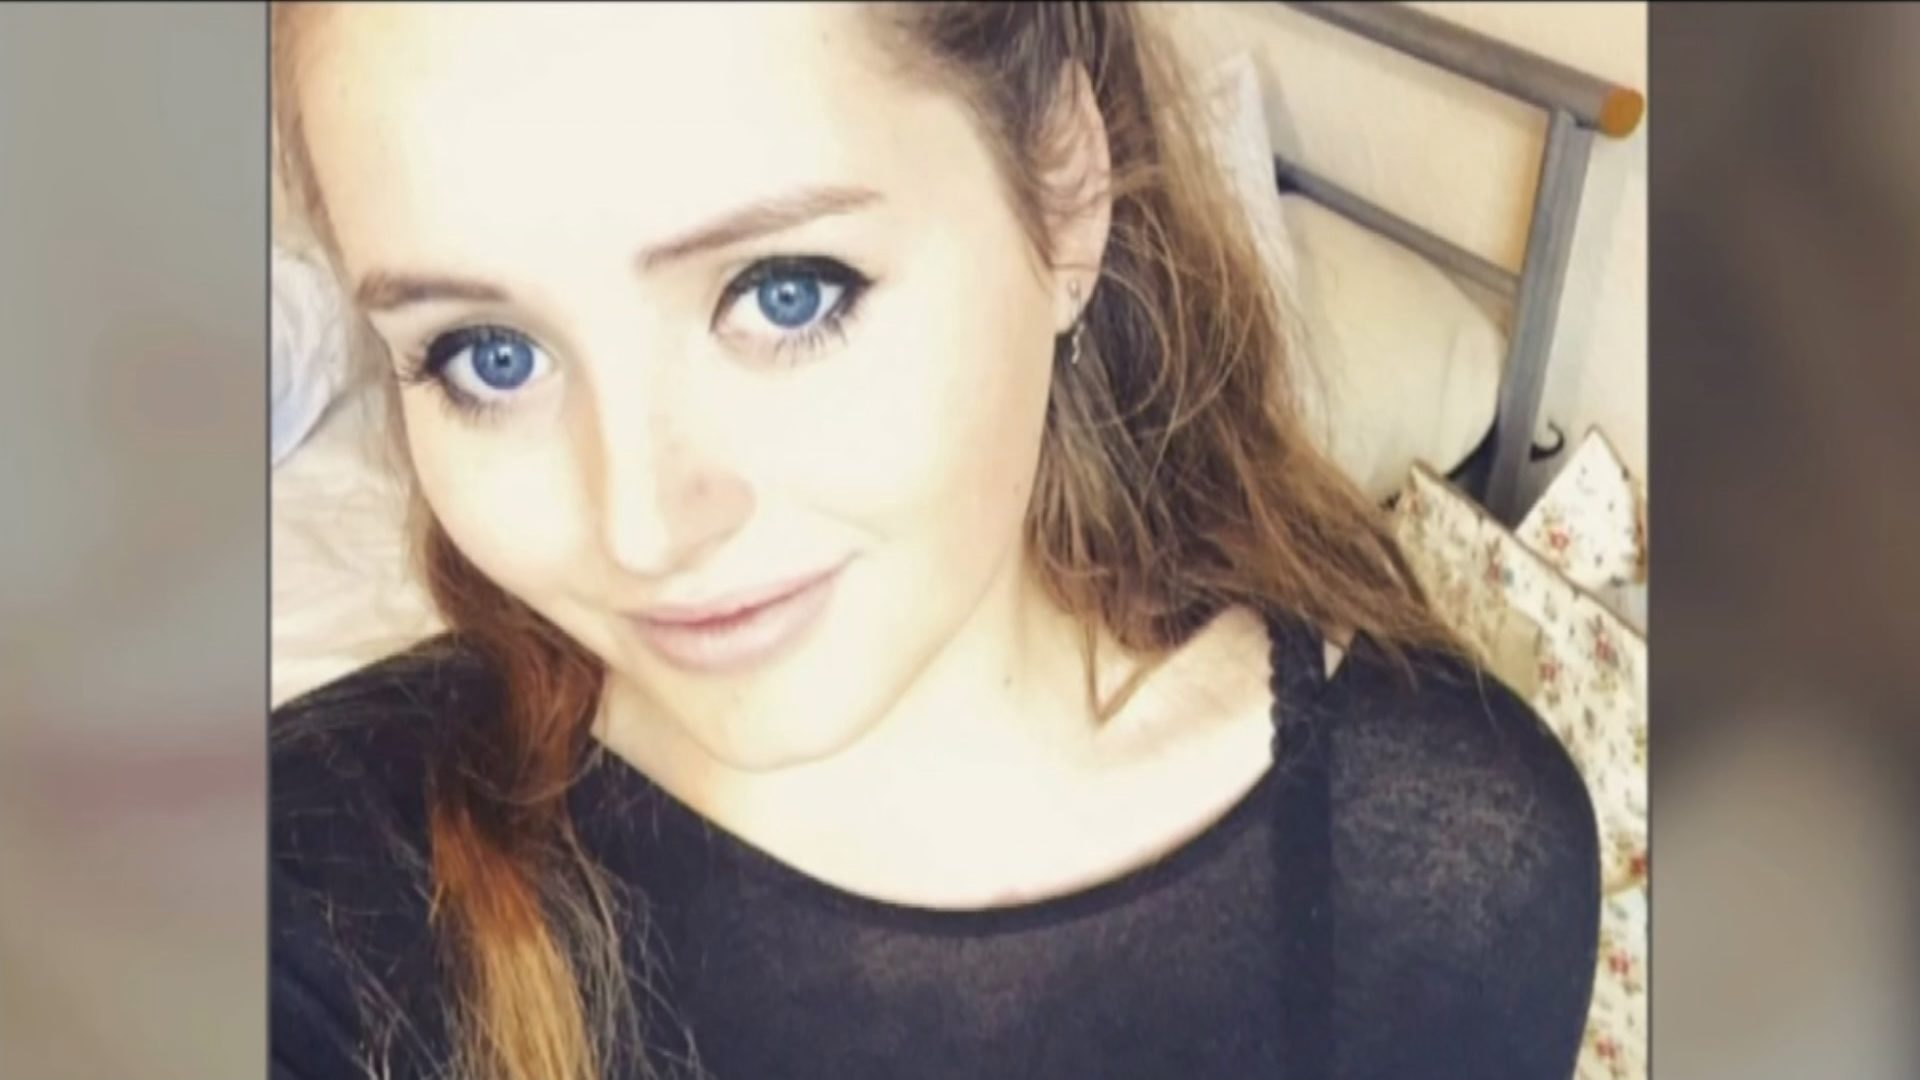 New Zealand police over murder of missing British backpacker Grace Millane - Channel 4 News